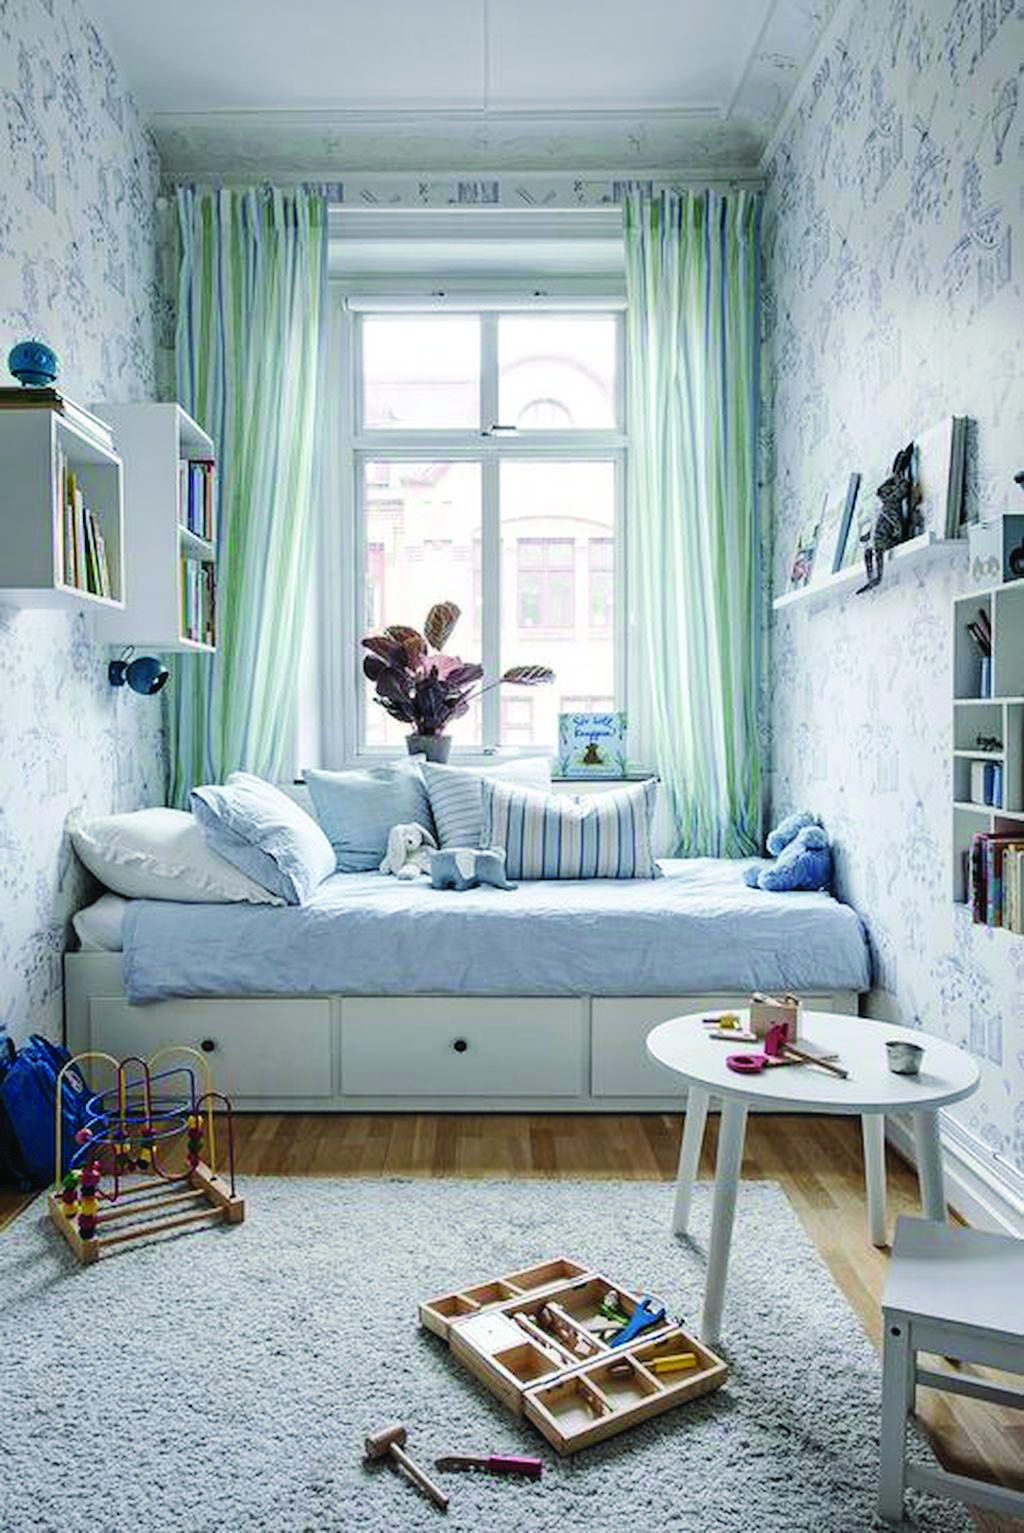 Extremely Fantastic Room Storage Room Hacks And Also Solutions